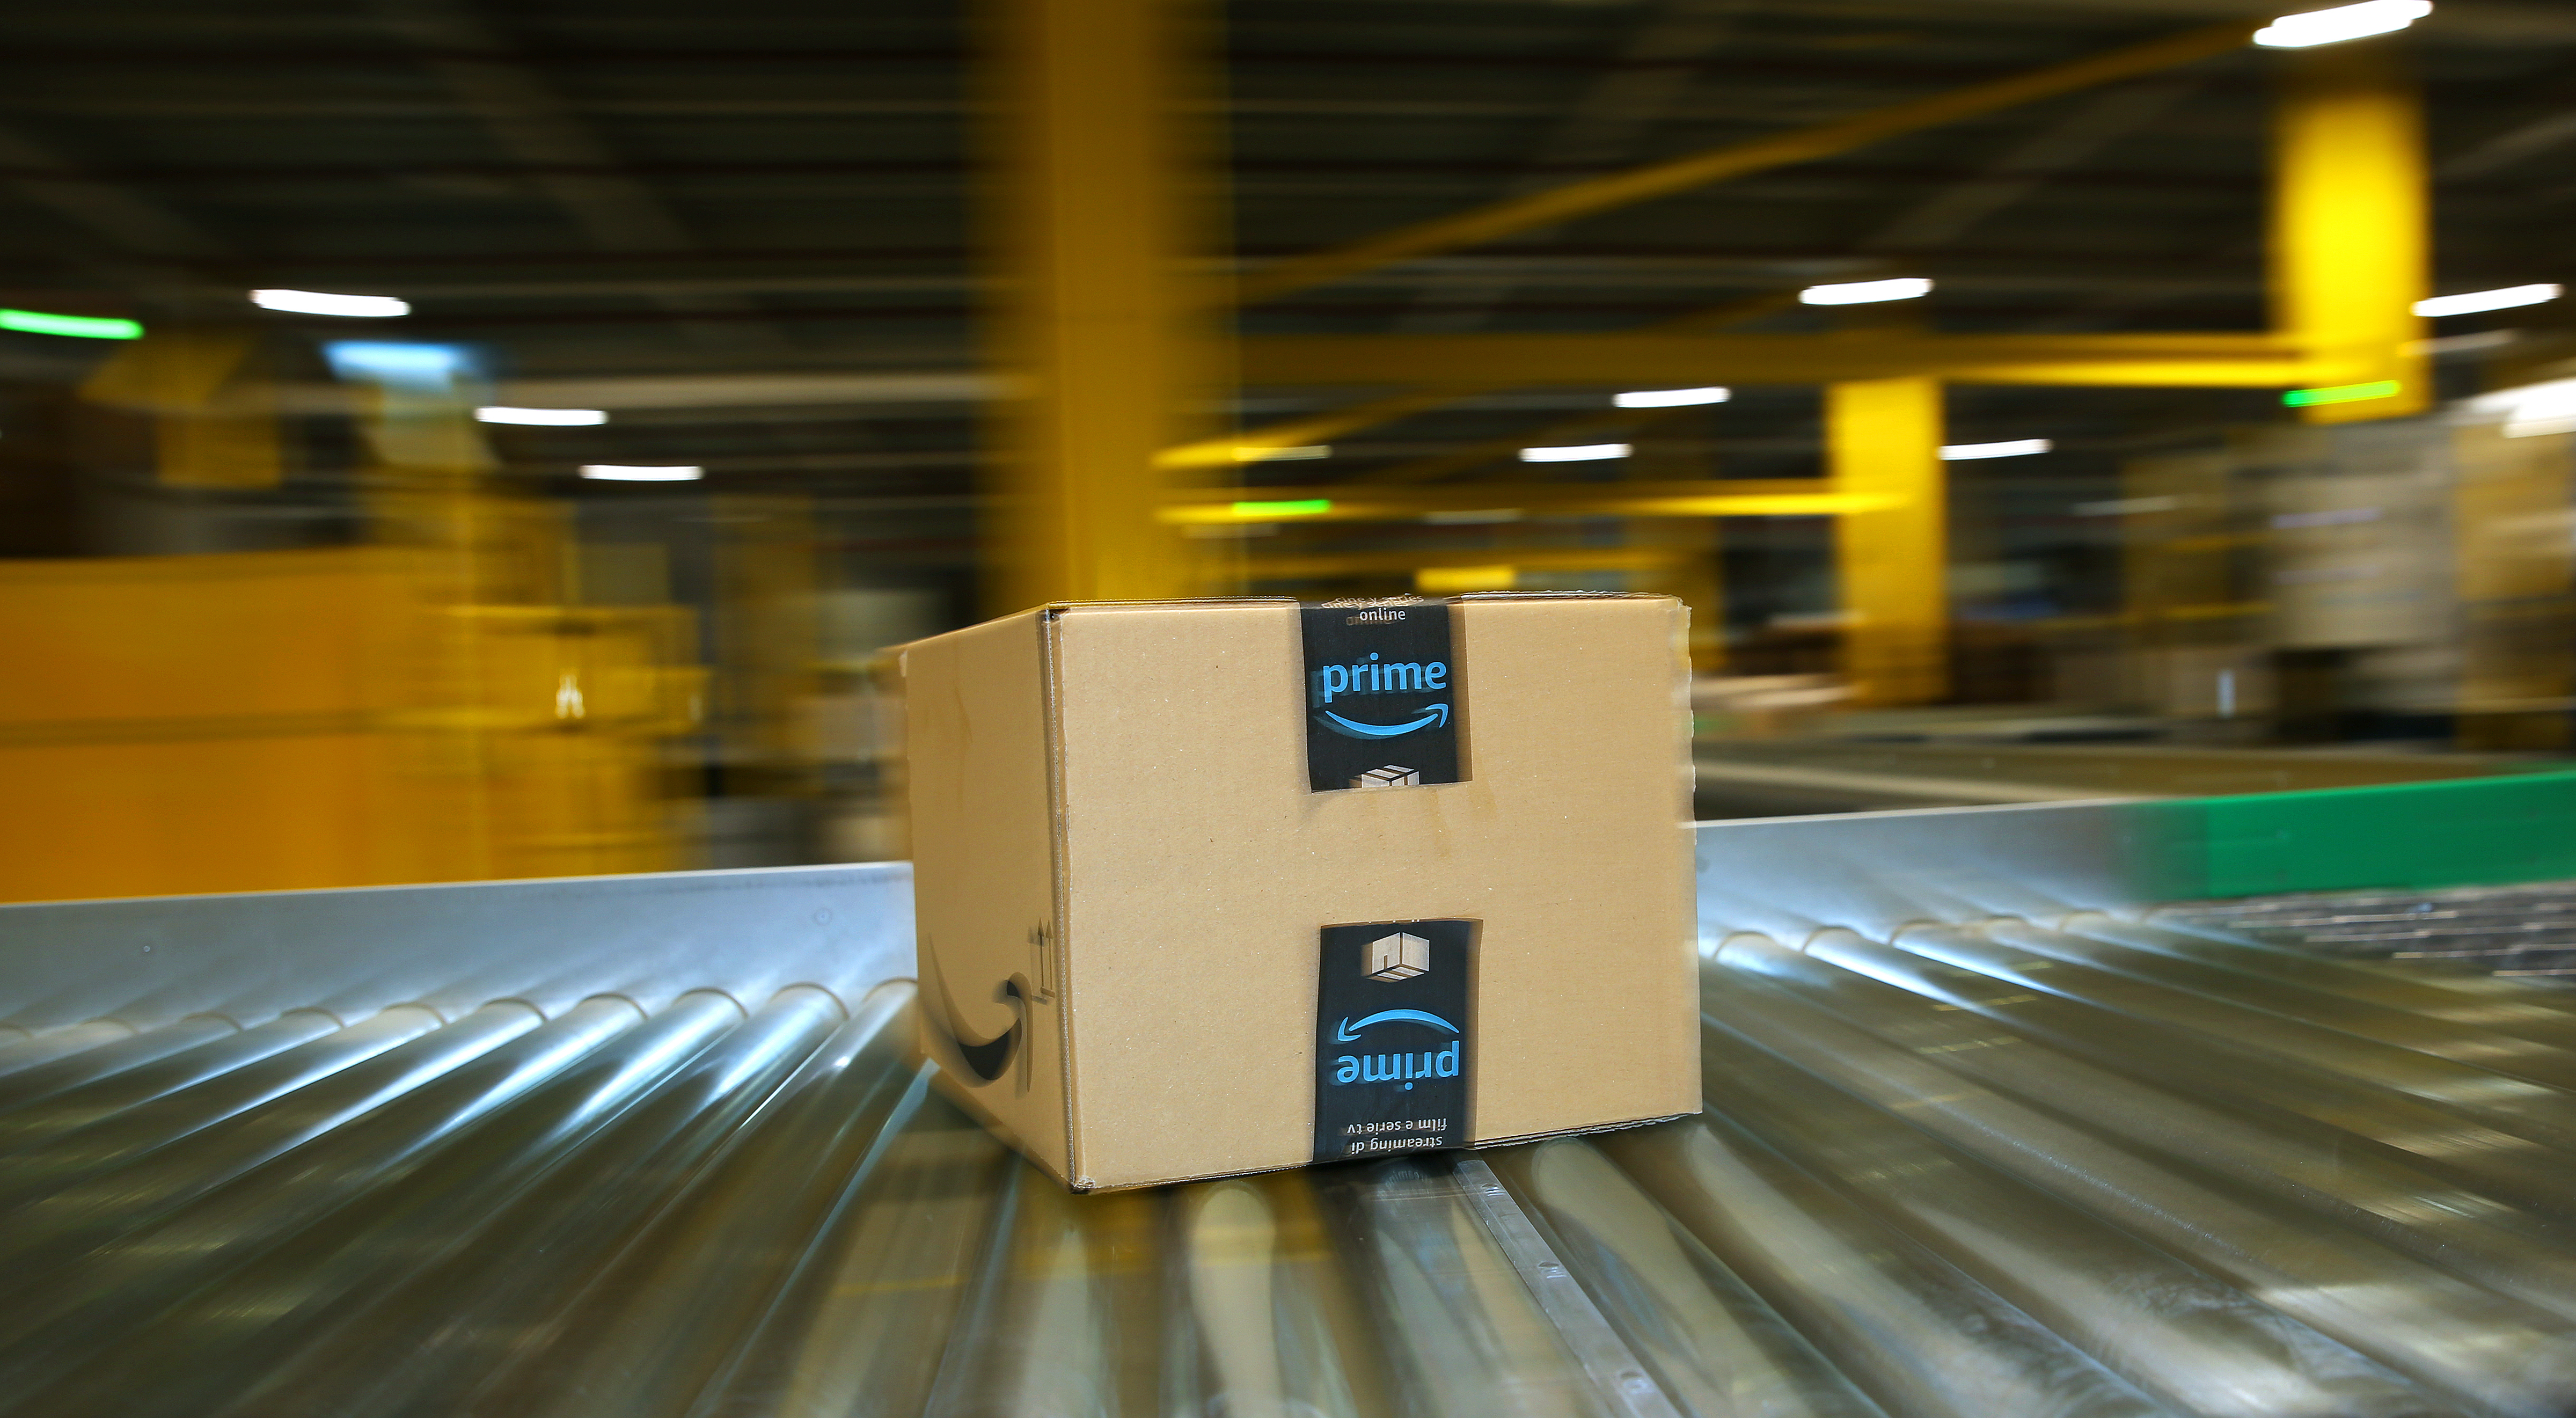 A package is transported on a conveyor belt in an Amazon logistics center.